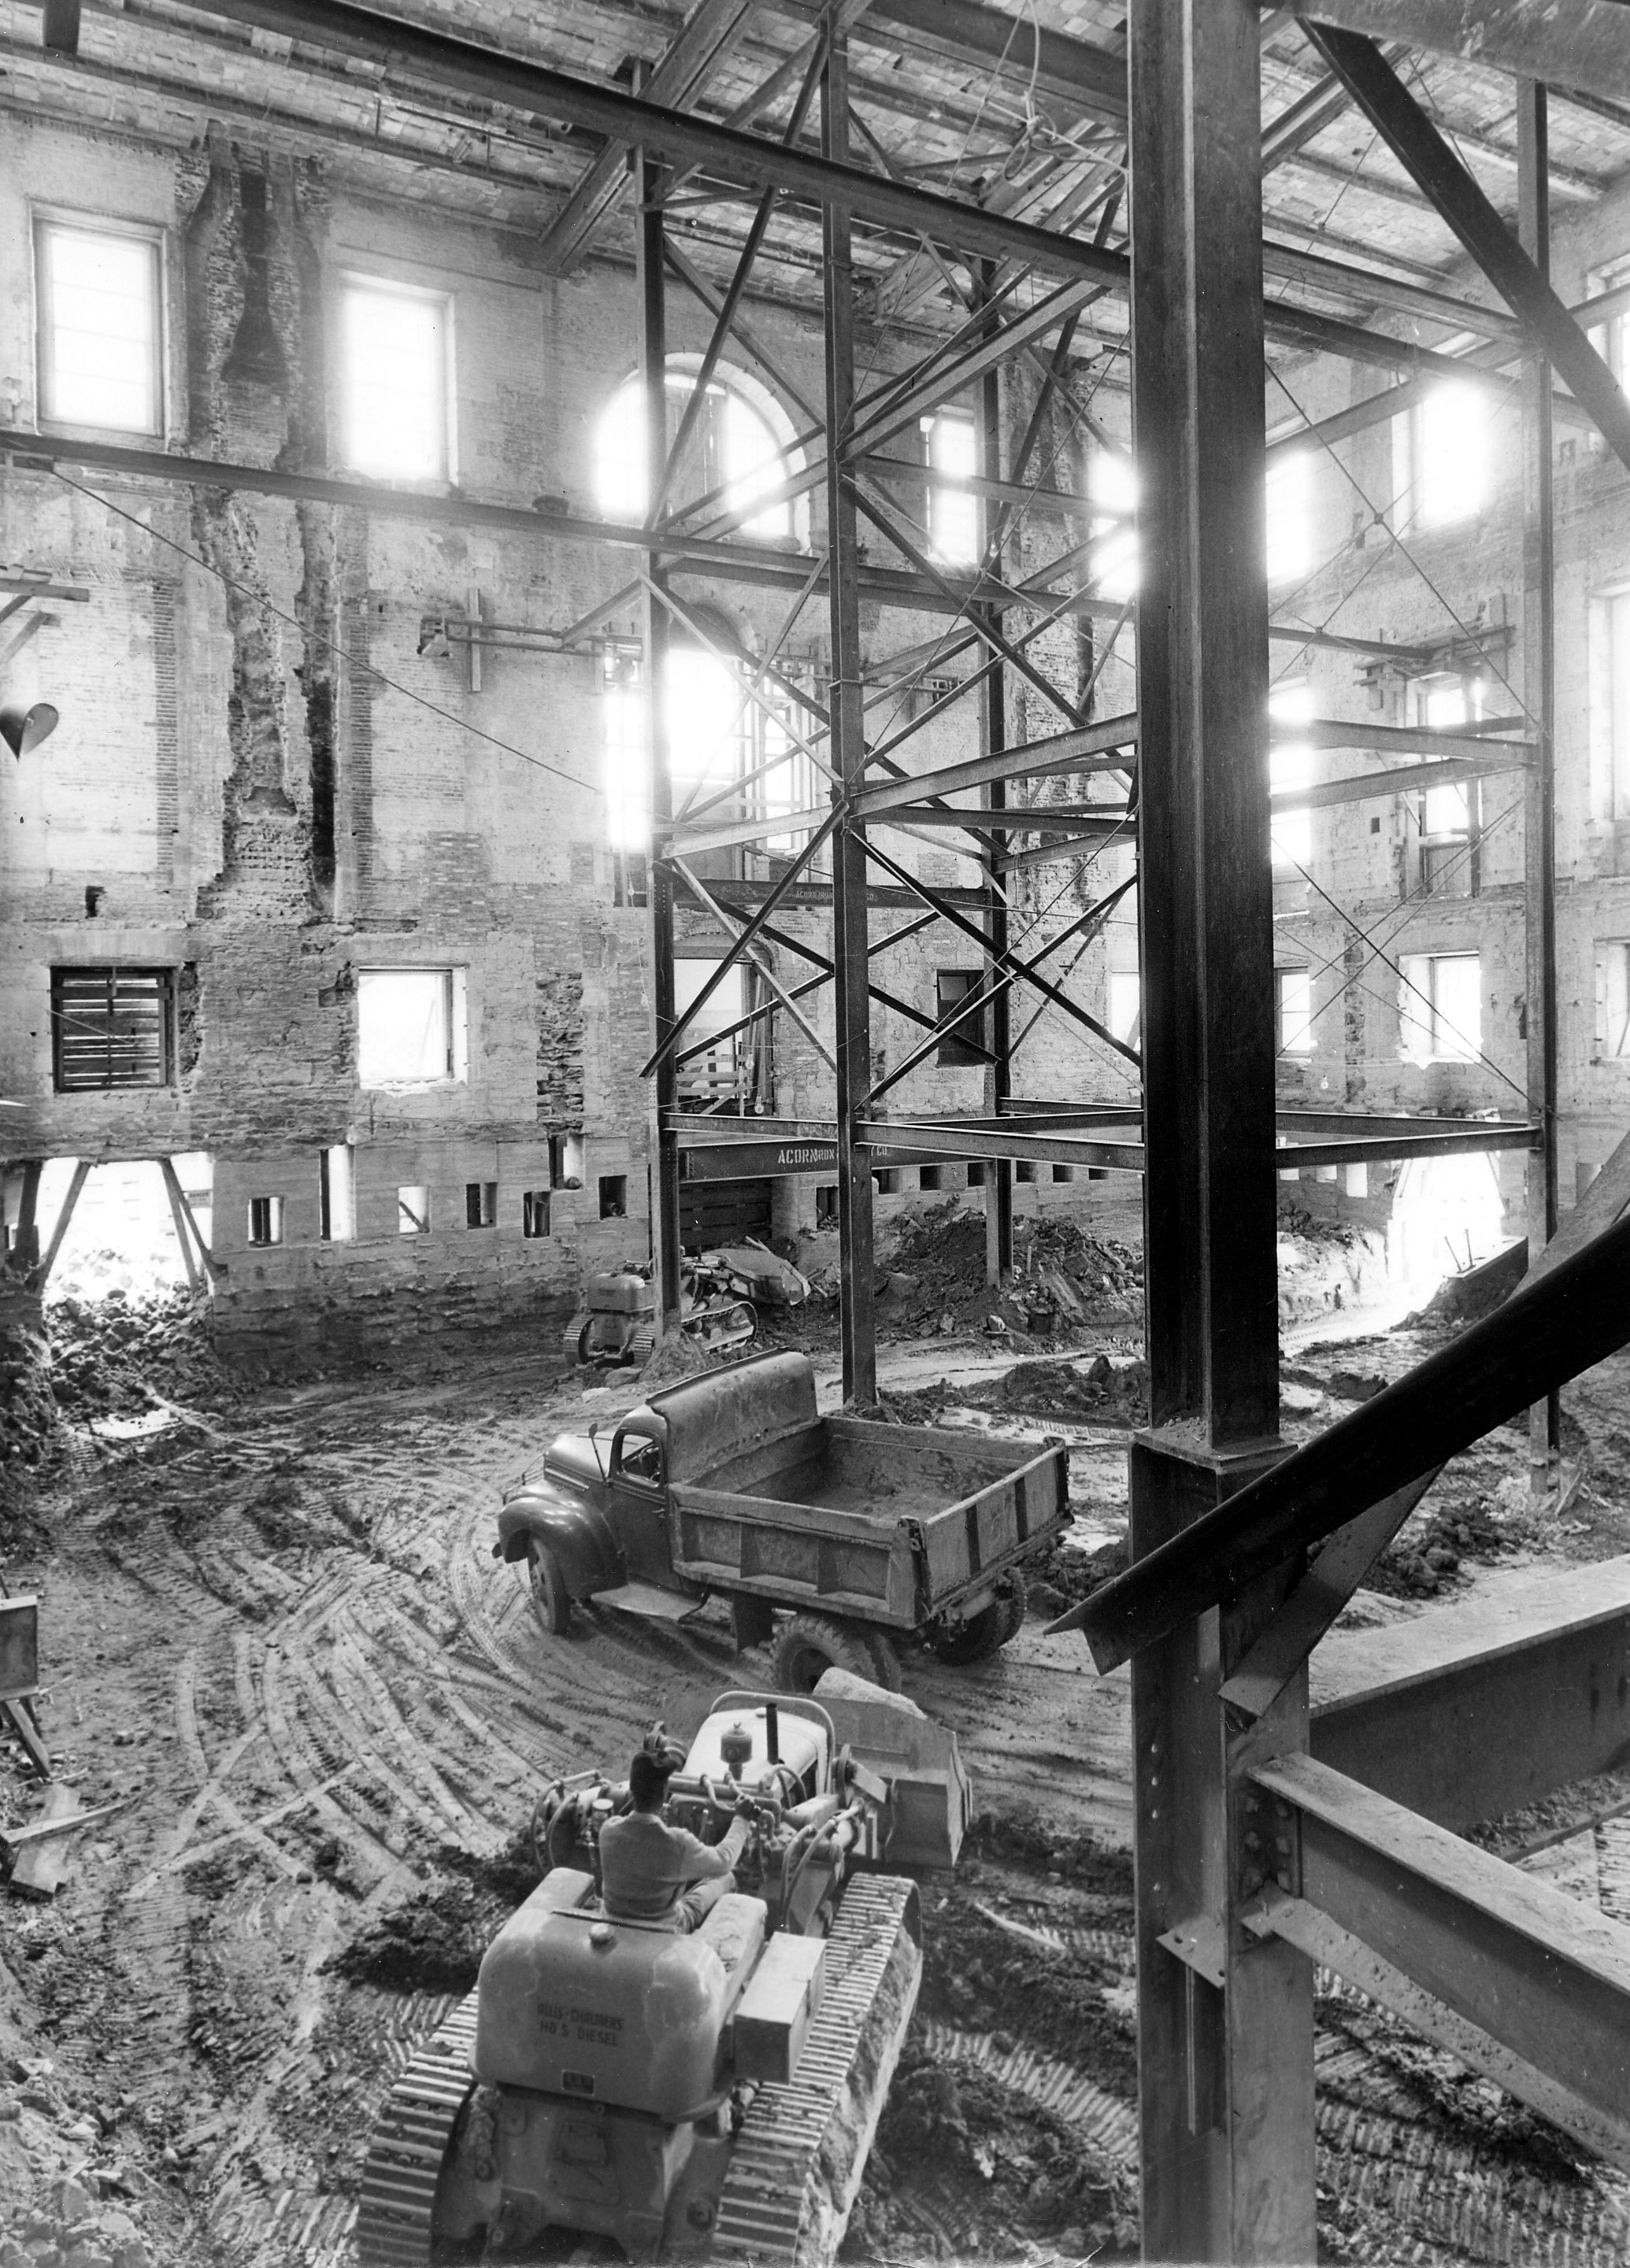 The shell of the White House during the renovation, as photographed on May 17, 1950. Window openings provide bursts of light into the cavernous interior of the White House, supported only by a web of temporary steel supports. The exterior walls rest on new concrete underpinnings, which allow earth-moving equipment to dig a new basement. Photo from the holdings of the National Archives and Records Administration, cataloged under the National Archives Identifier (NAID) 6982099.